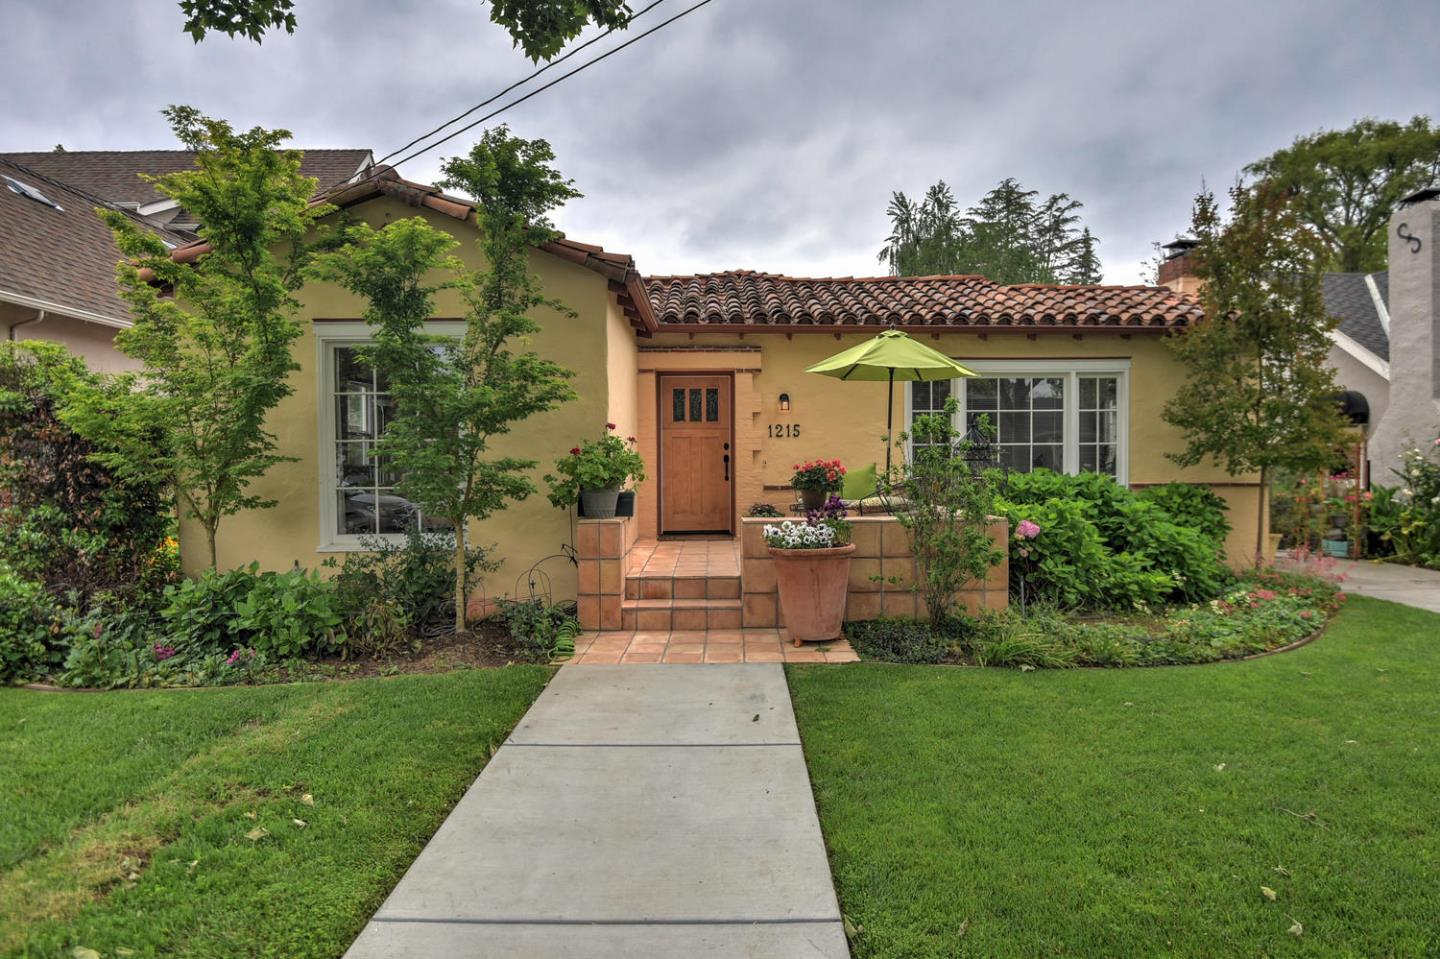 Additional photo for property listing at 1215 Fairview Ave  SAN JOSE, CALIFORNIA 95125